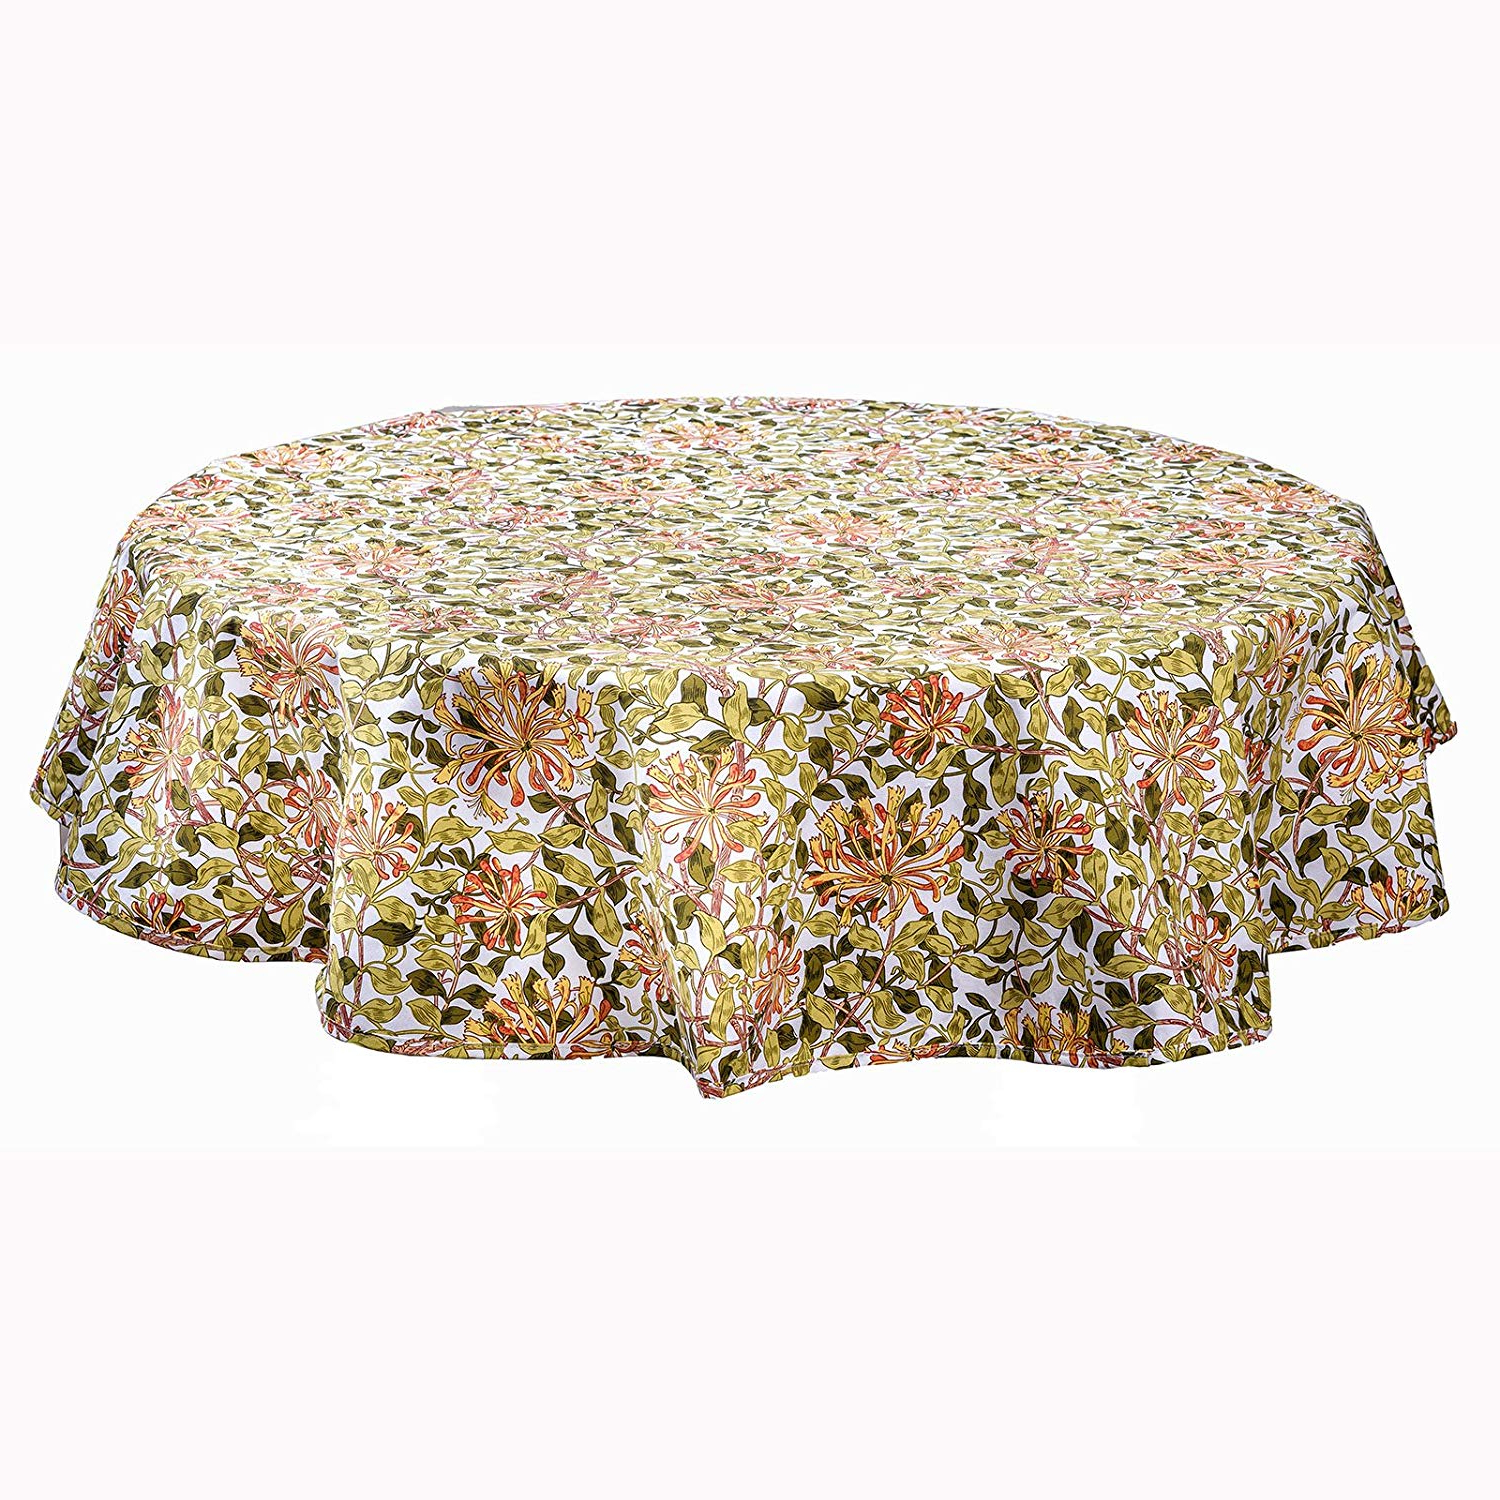 [%william Morris Gallery Honeysuckle 100% Cotton Tablecloth Throughout Favorite Morris Round Dining Tables|morris Round Dining Tables For Famous William Morris Gallery Honeysuckle 100% Cotton Tablecloth|most Popular Morris Round Dining Tables In William Morris Gallery Honeysuckle 100% Cotton Tablecloth|widely Used William Morris Gallery Honeysuckle 100% Cotton Tablecloth Throughout Morris Round Dining Tables%] (View 14 of 30)